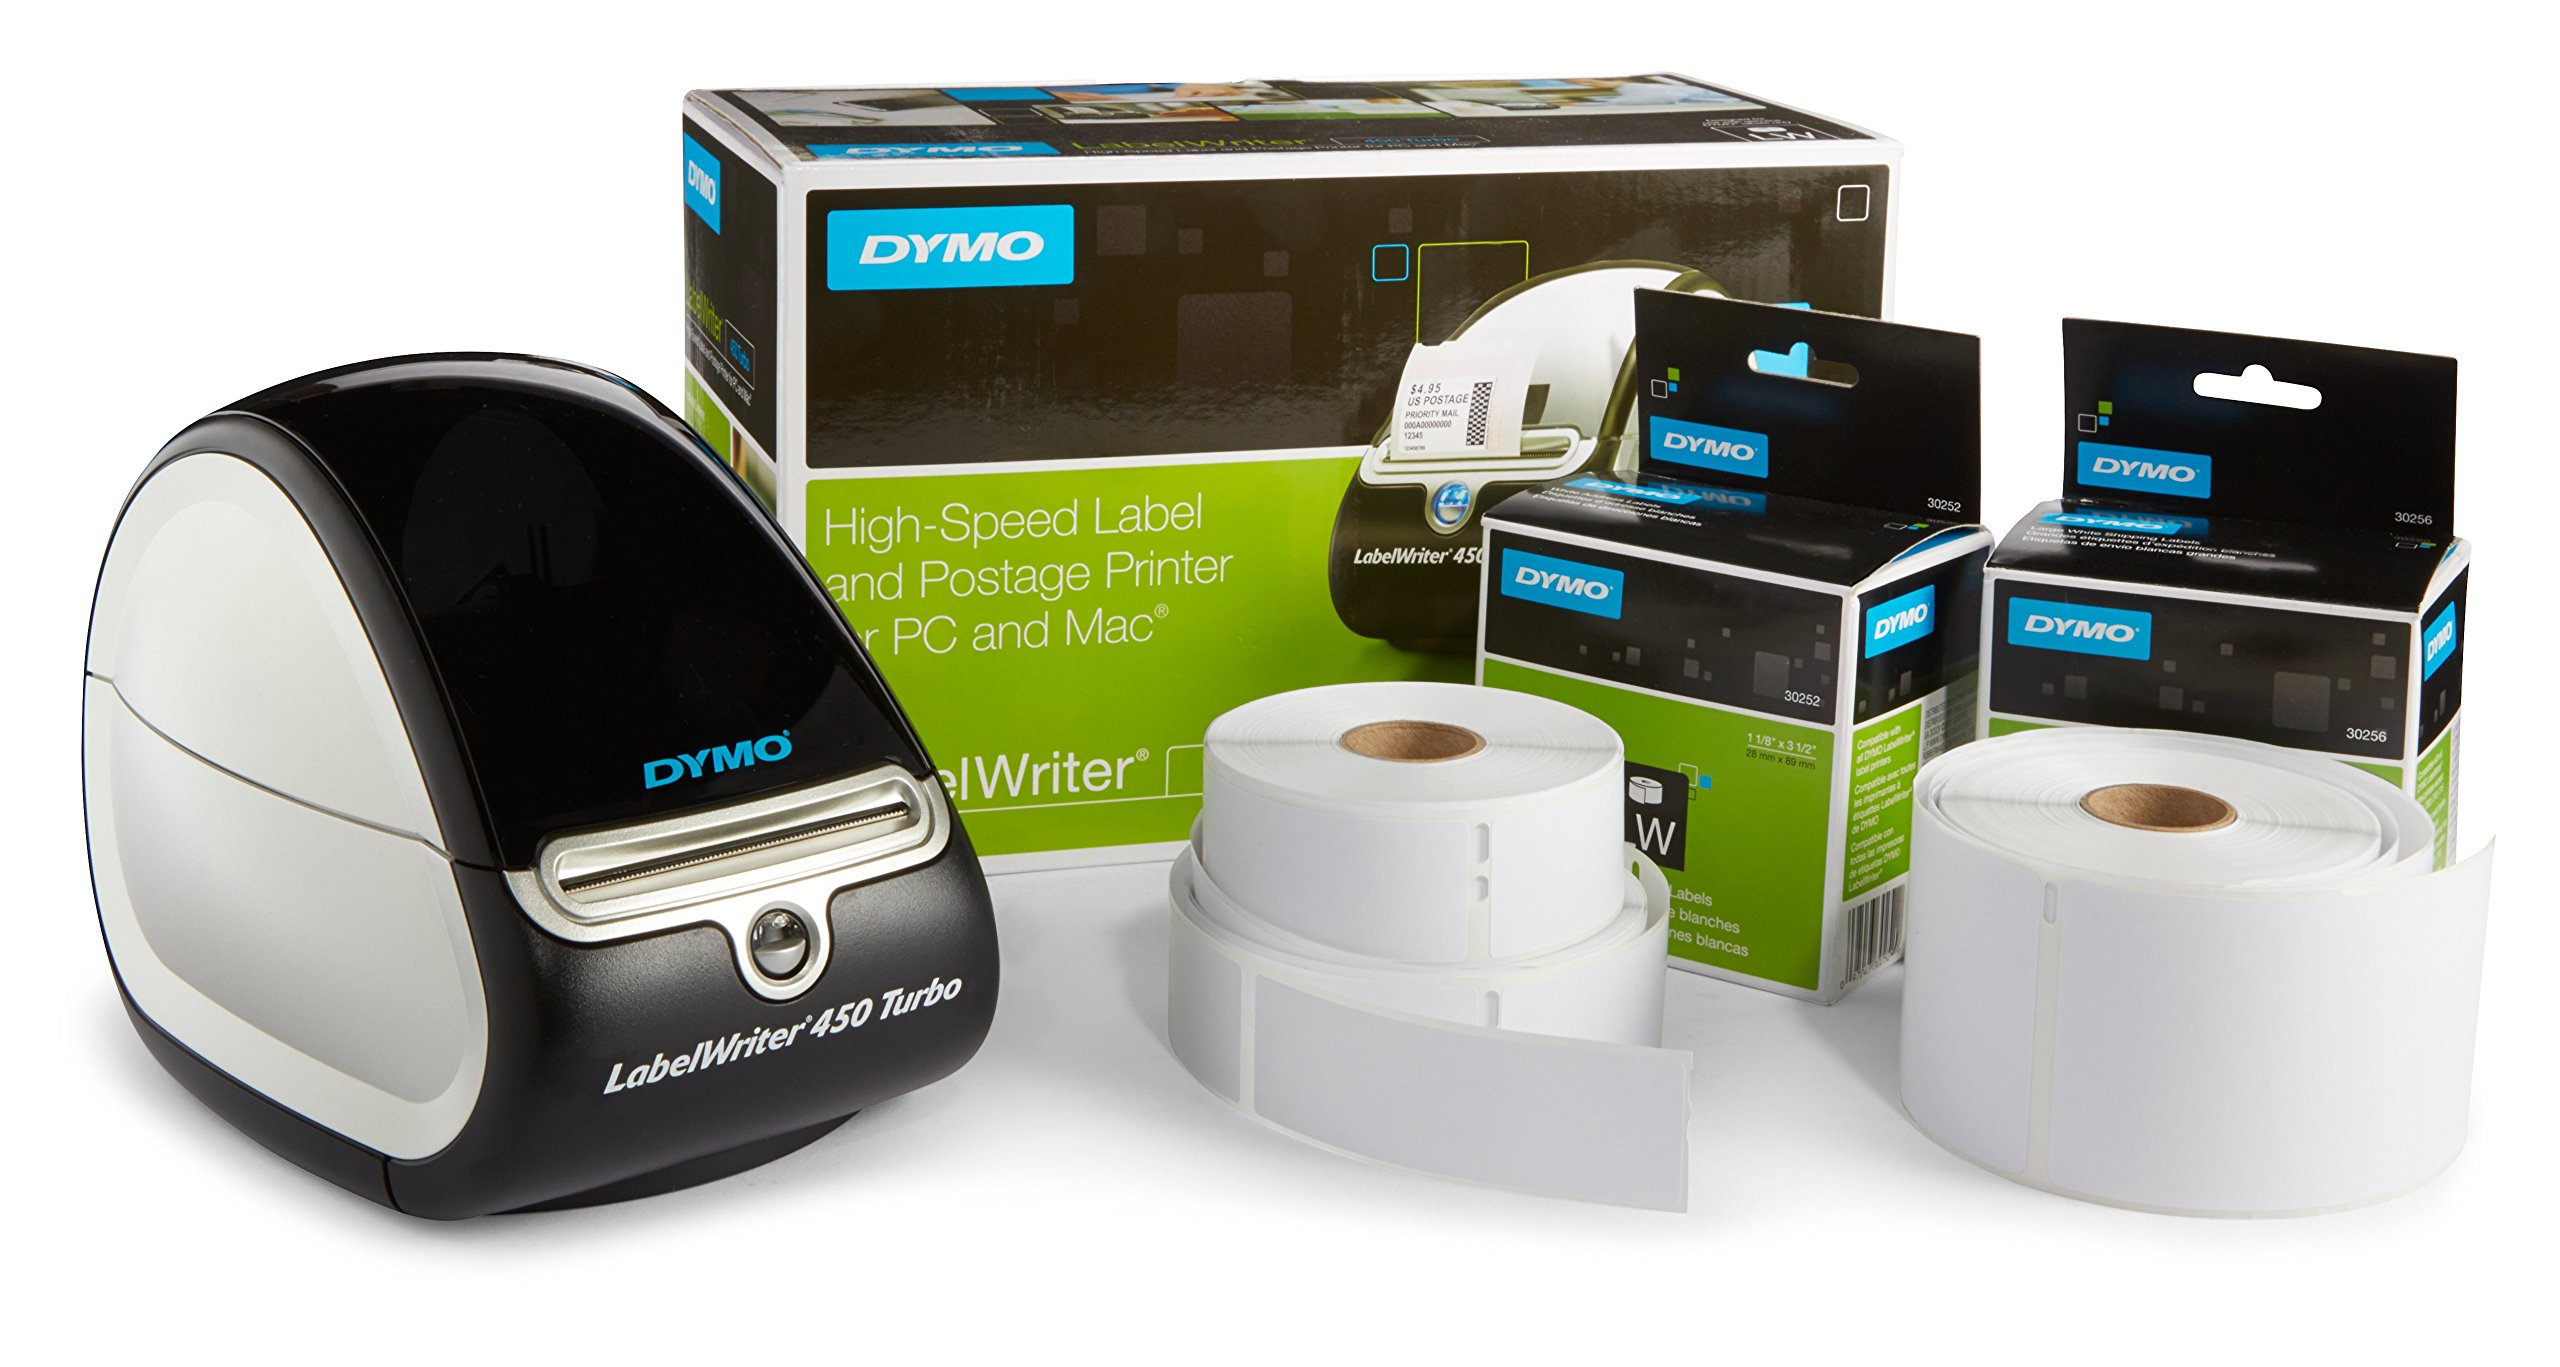 DYMO LabelWriter 450 Turbo Label Maker with Bonus LW White Address Labels, 1-1/8-In. x 3-3-1/2-In., Roll of 350 by DYMO